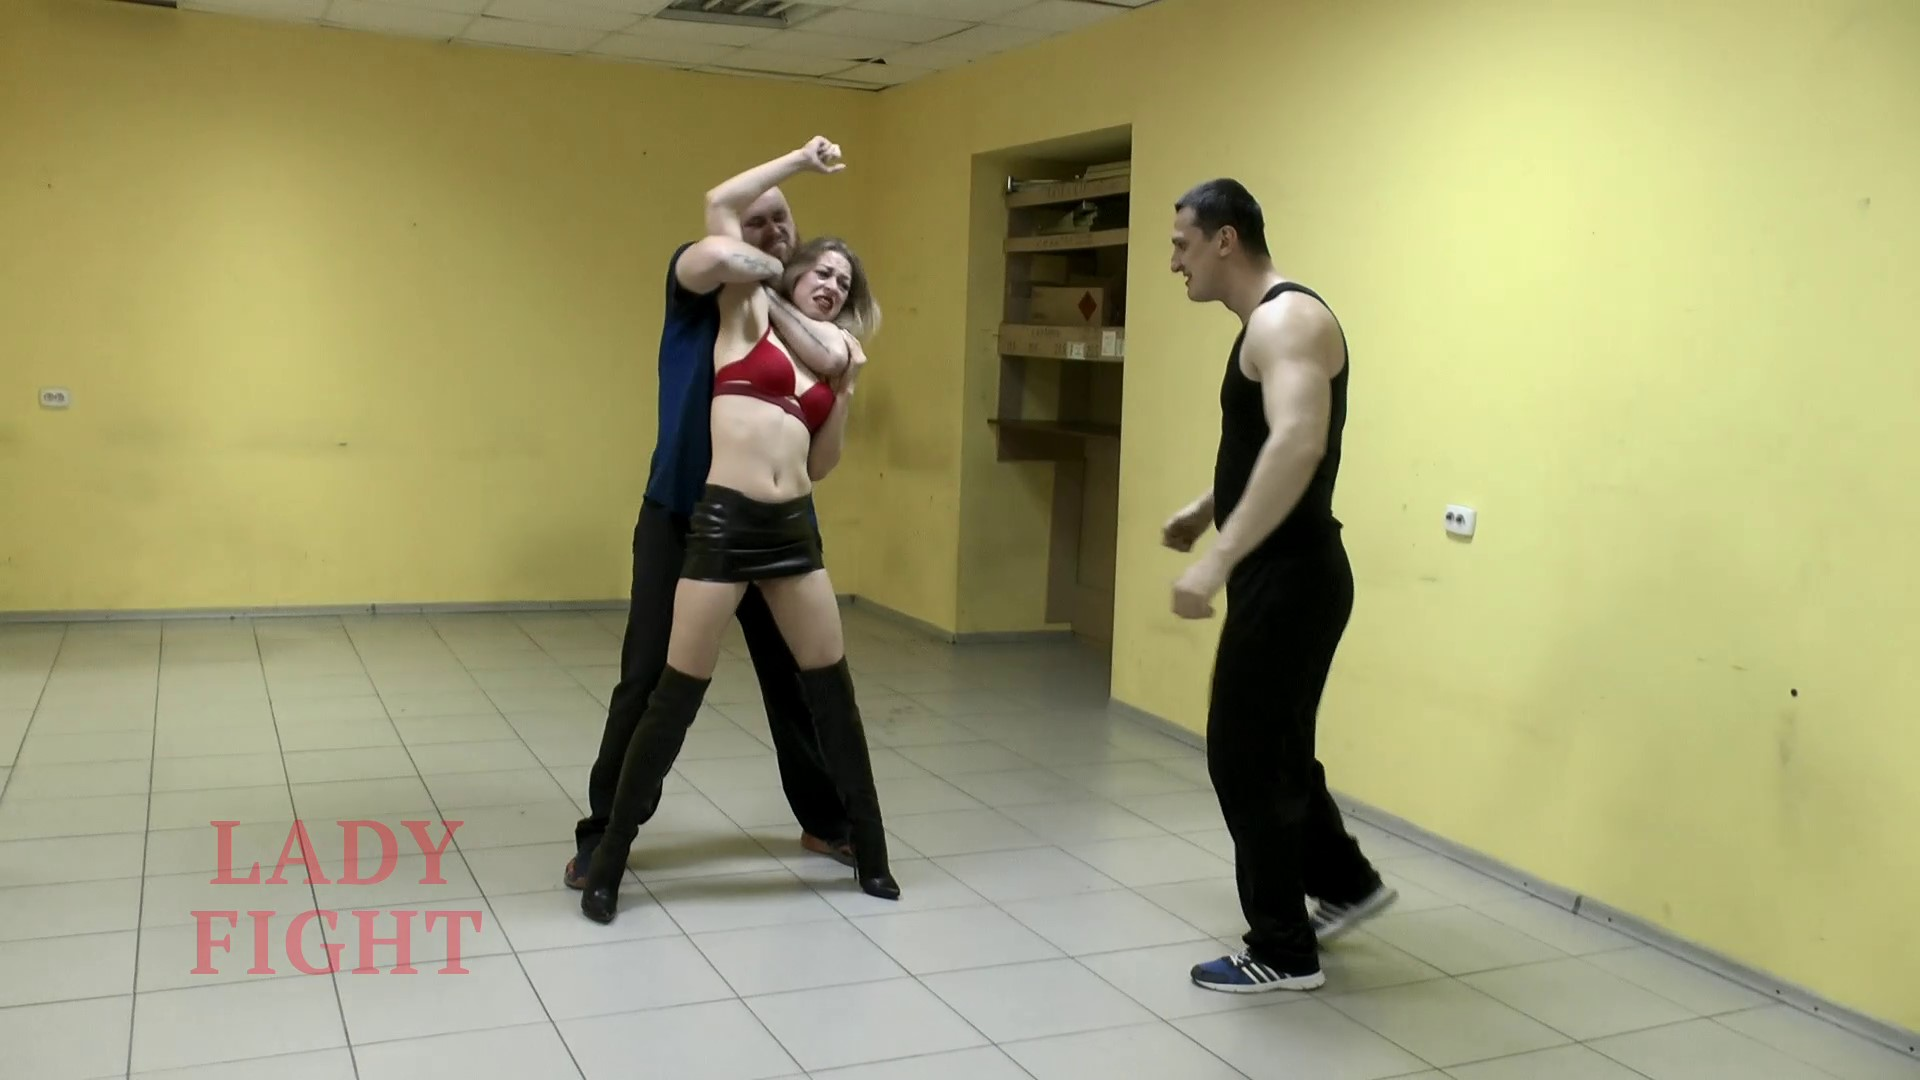 LADYFIGHT-Deadly-Wrestling-For-Lora-22